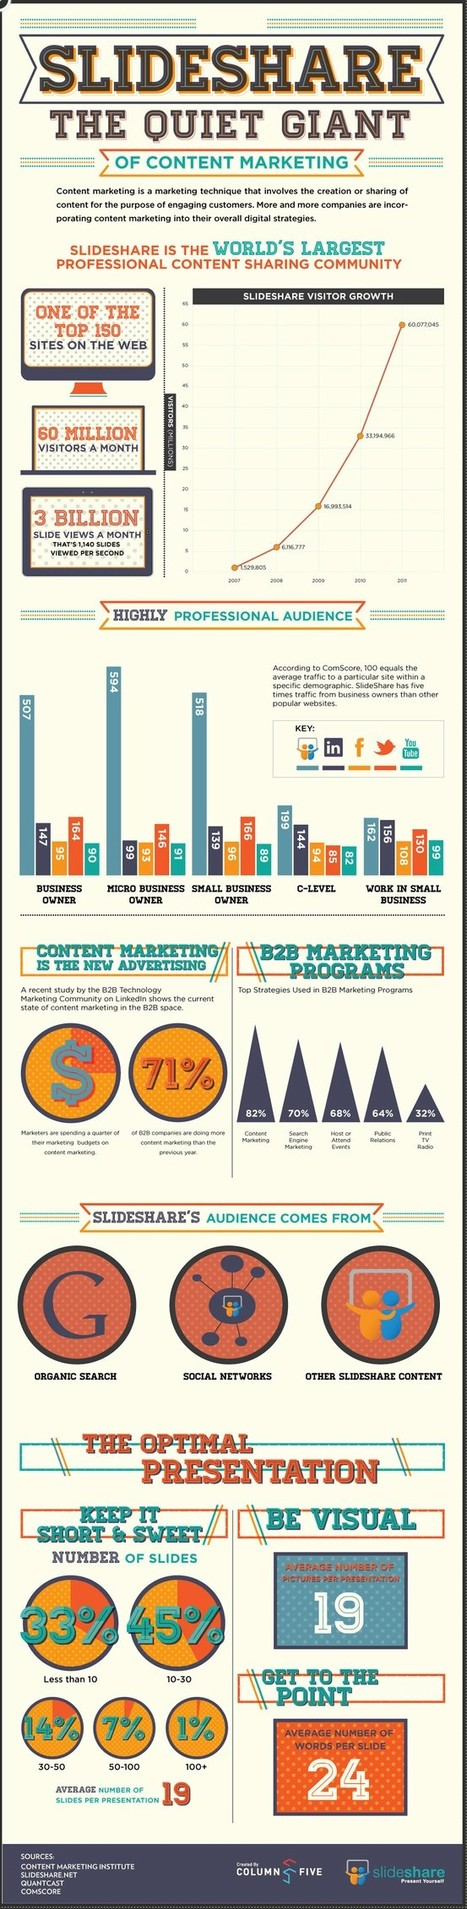 Slideshare The Quiet Content Marketing and SEO Giant [Infographic] | Marketing Revolution | Scoop.it